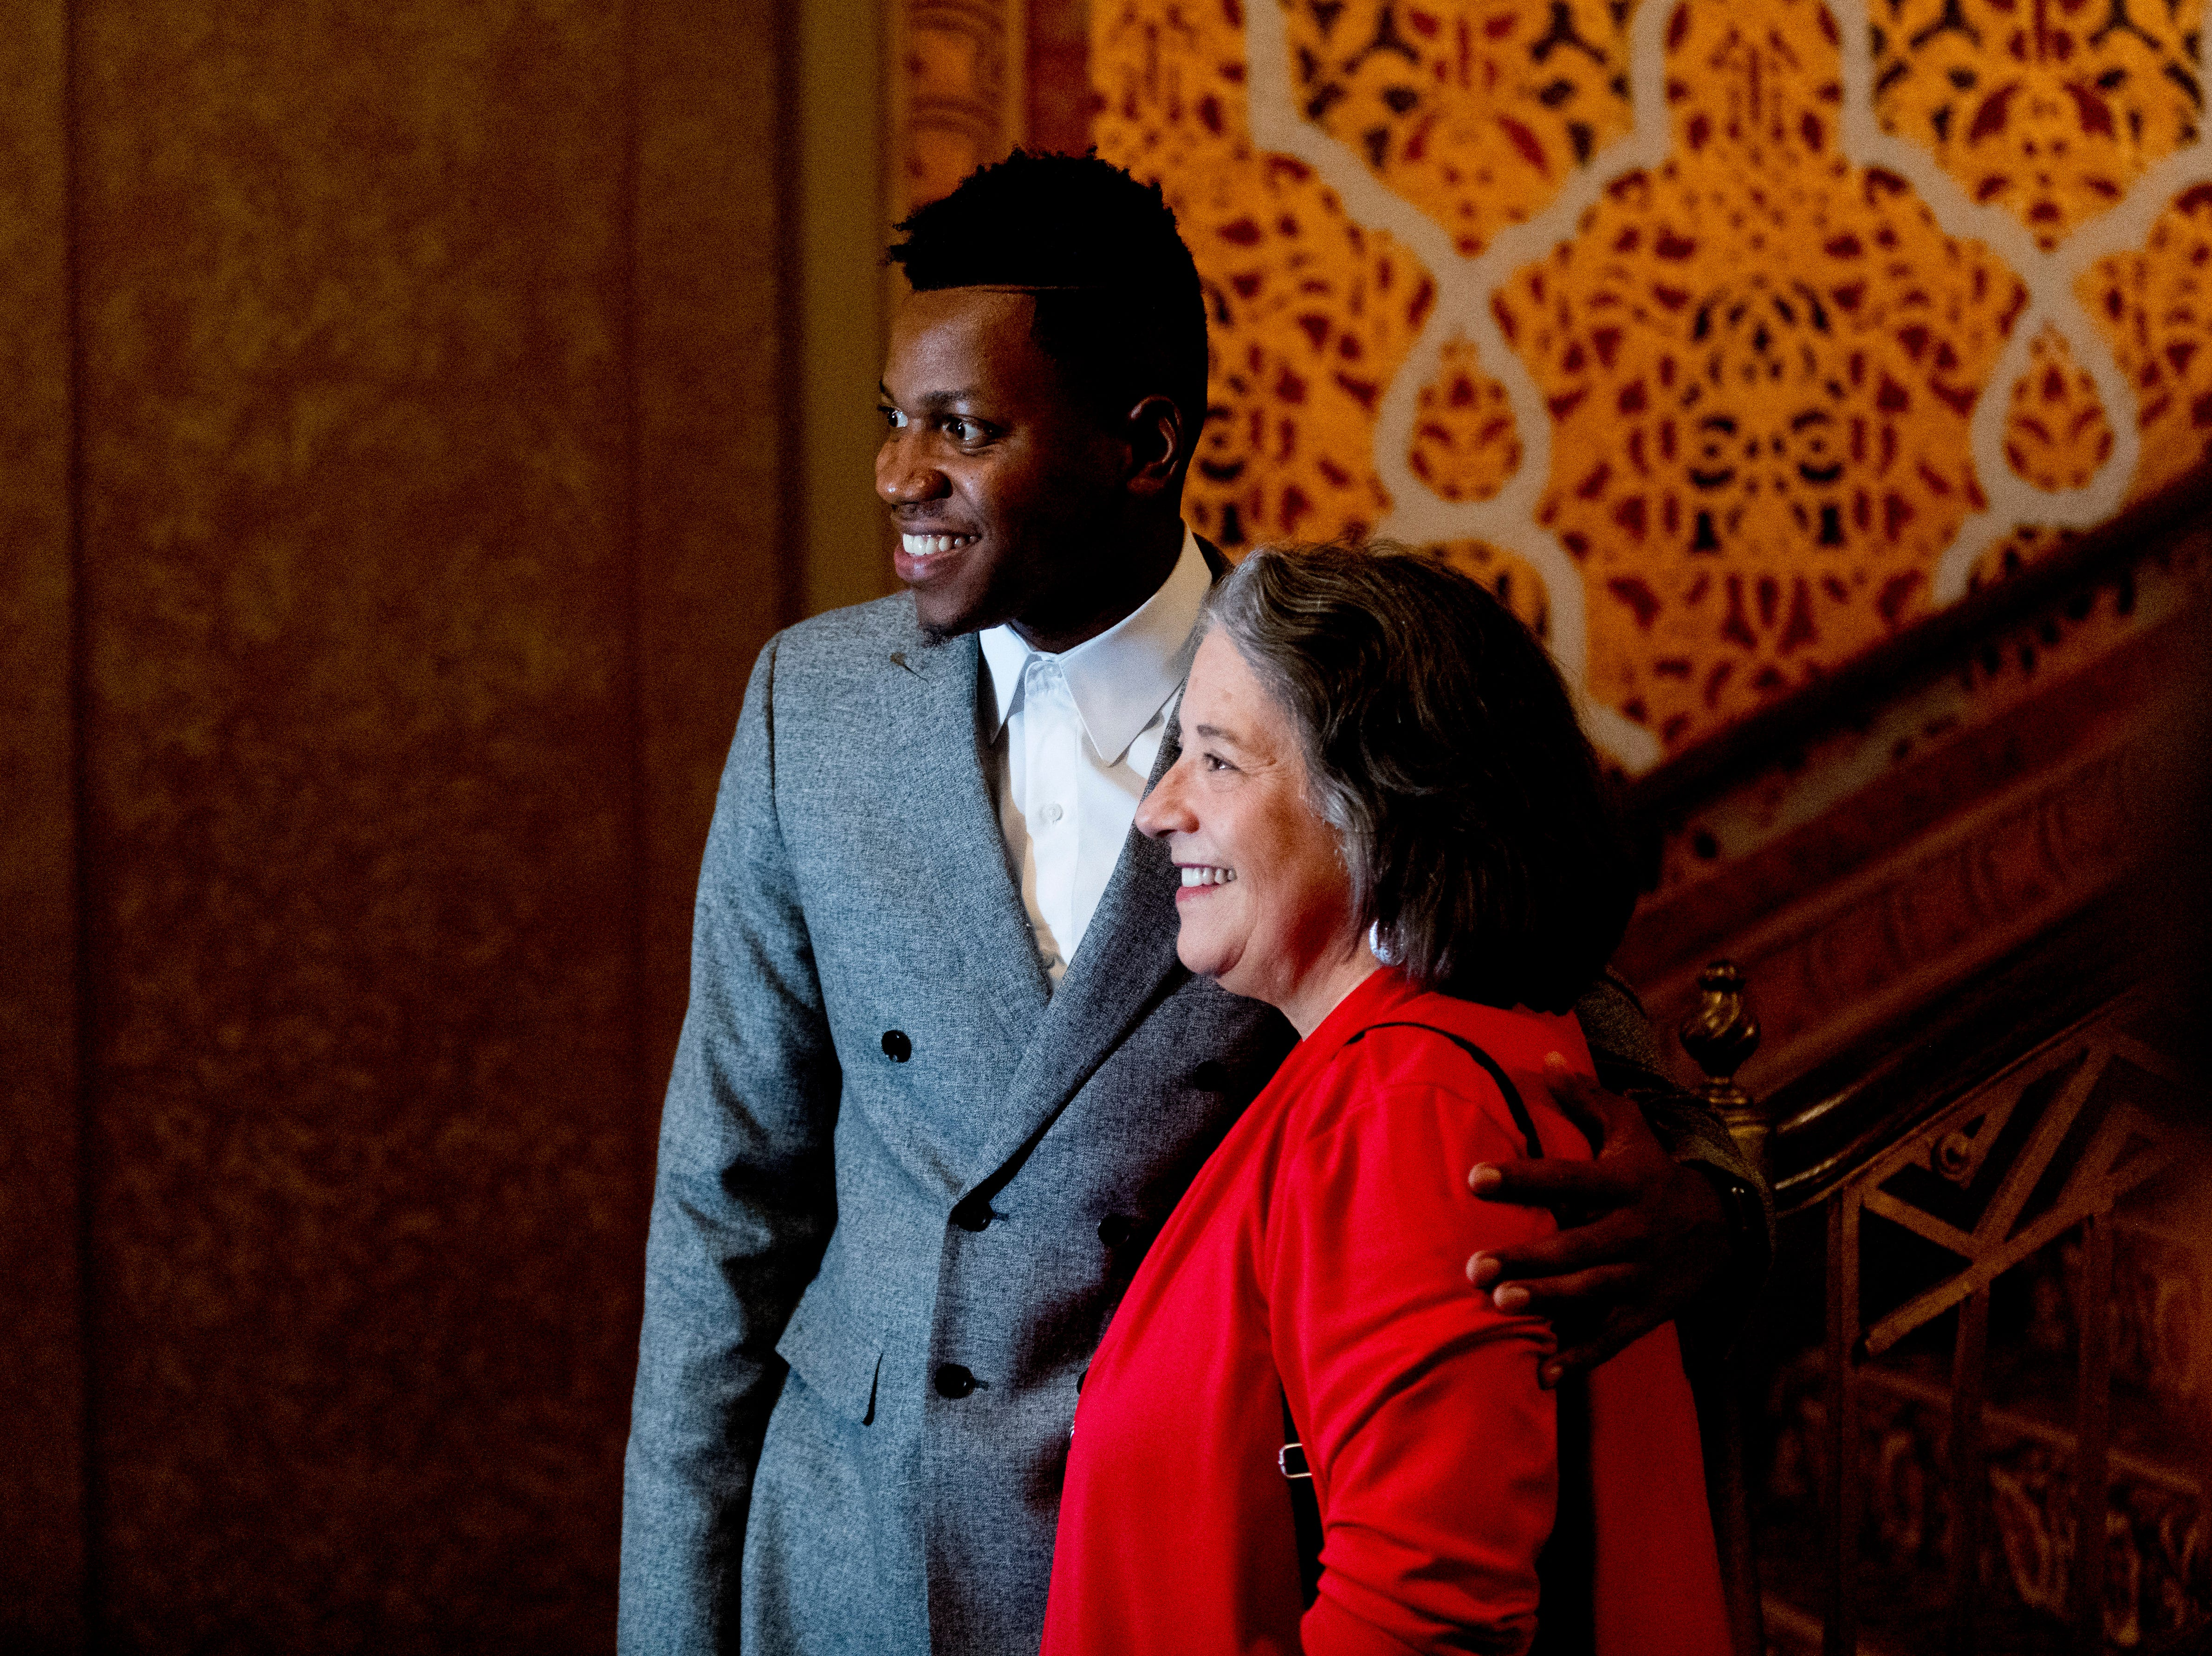 """Chris Blue takes a photo with Knoxville Mayor Madeline Rogero at the Beck Cultural Center's """"Eighth of August"""" commemoration at the Tennessee Theatre in Knoxville, Tennessee on Wednesday, August 8, 2018. Filmmaker Loki Mulholland and civil rights icon Joan Trumpauer Mulholland were special guests at the debut screening of Black, White & U.S."""